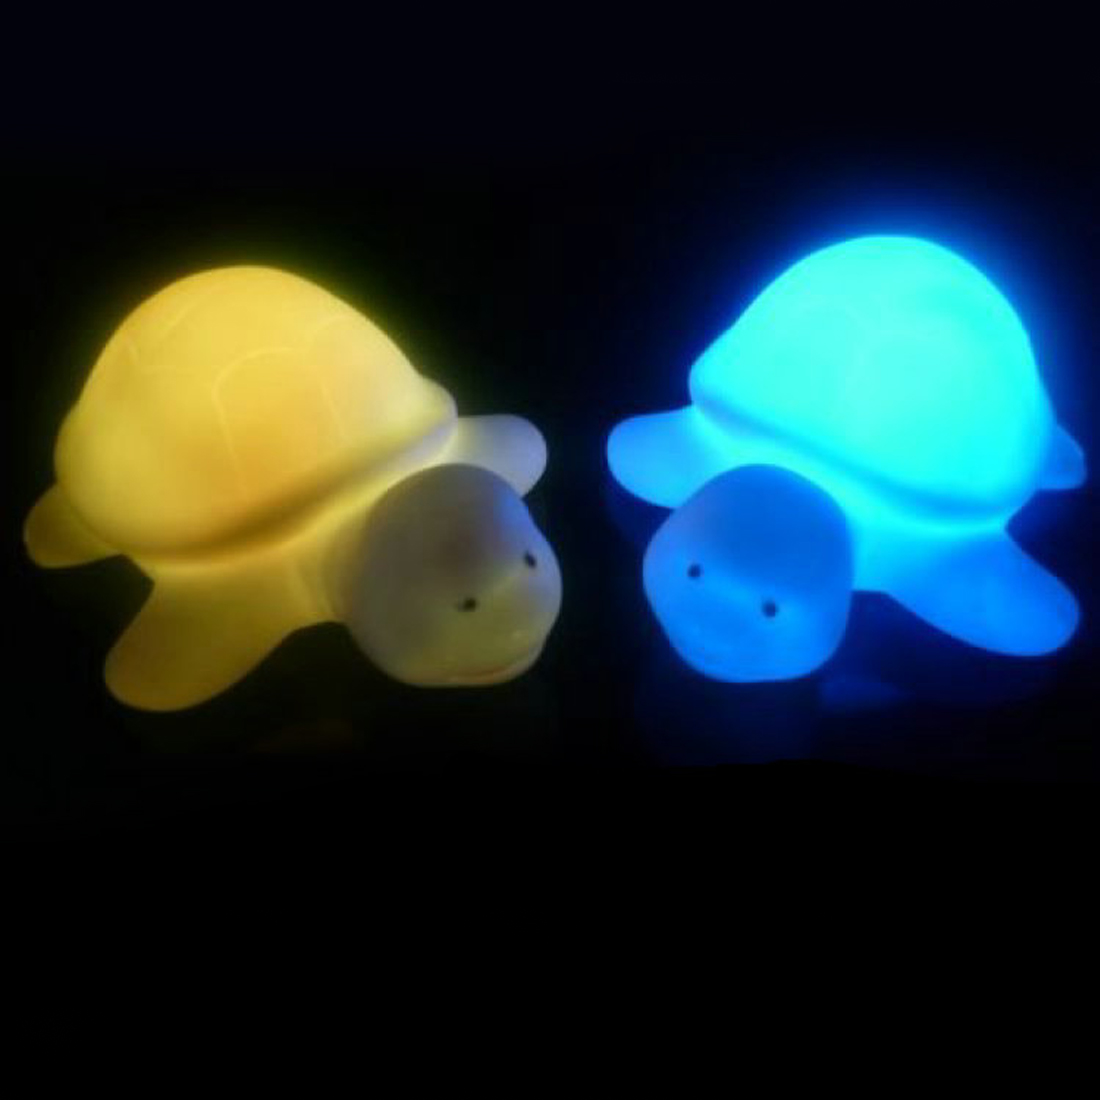 Novelty Turtle LED 7 Colours Childrens Night Light Lamp Party Christmas Decoration Colorful Flashing Lights Toys for BabyNovelty Turtle LED 7 Colours Childrens Night Light Lamp Party Christmas Decoration Colorful Flashing Lights Toys for Baby